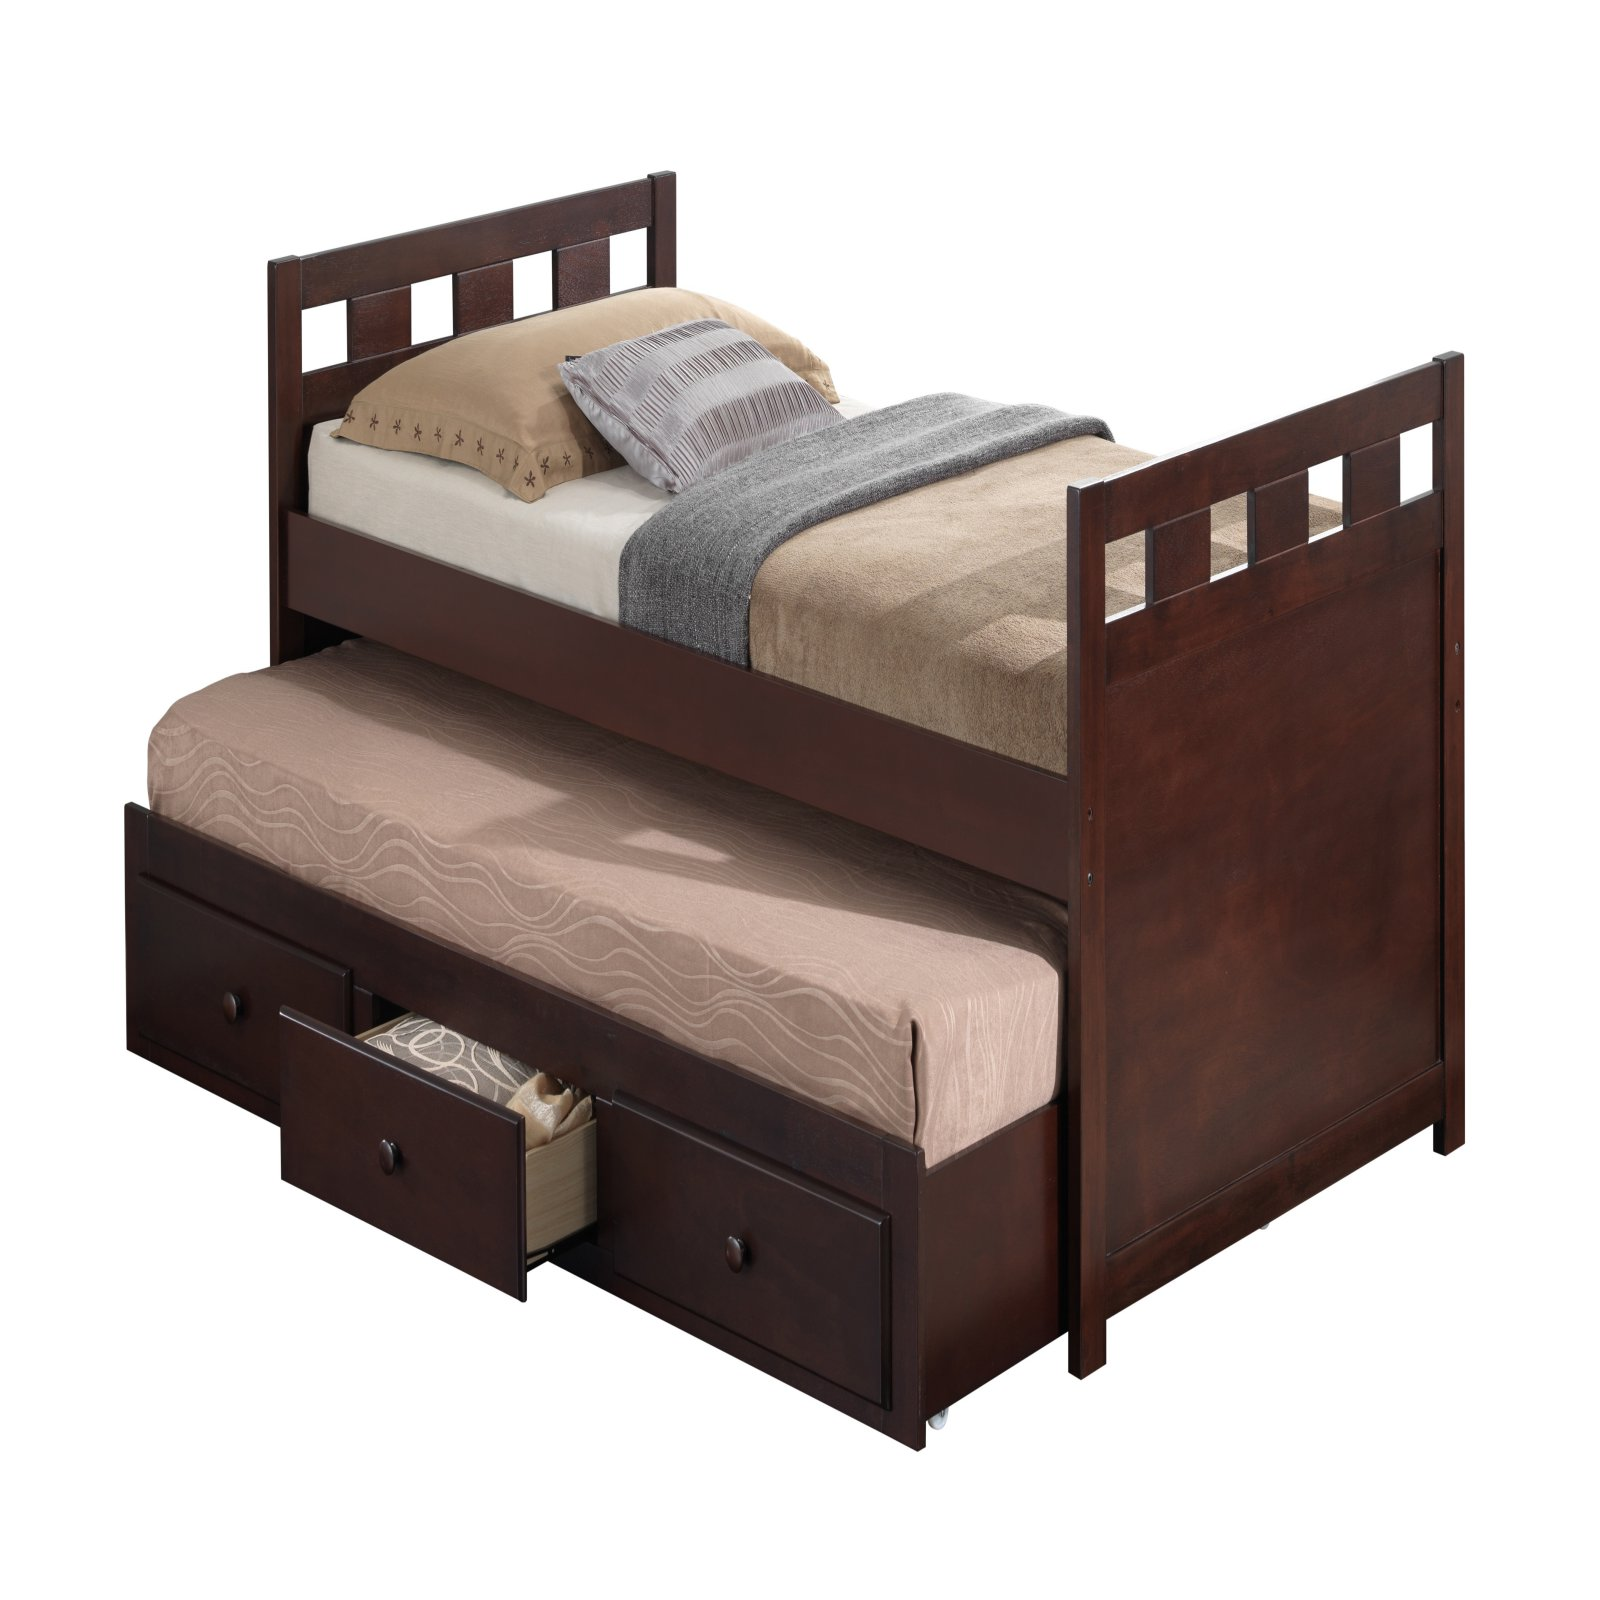 Broyhill Kids Breckenridge Captains Bed